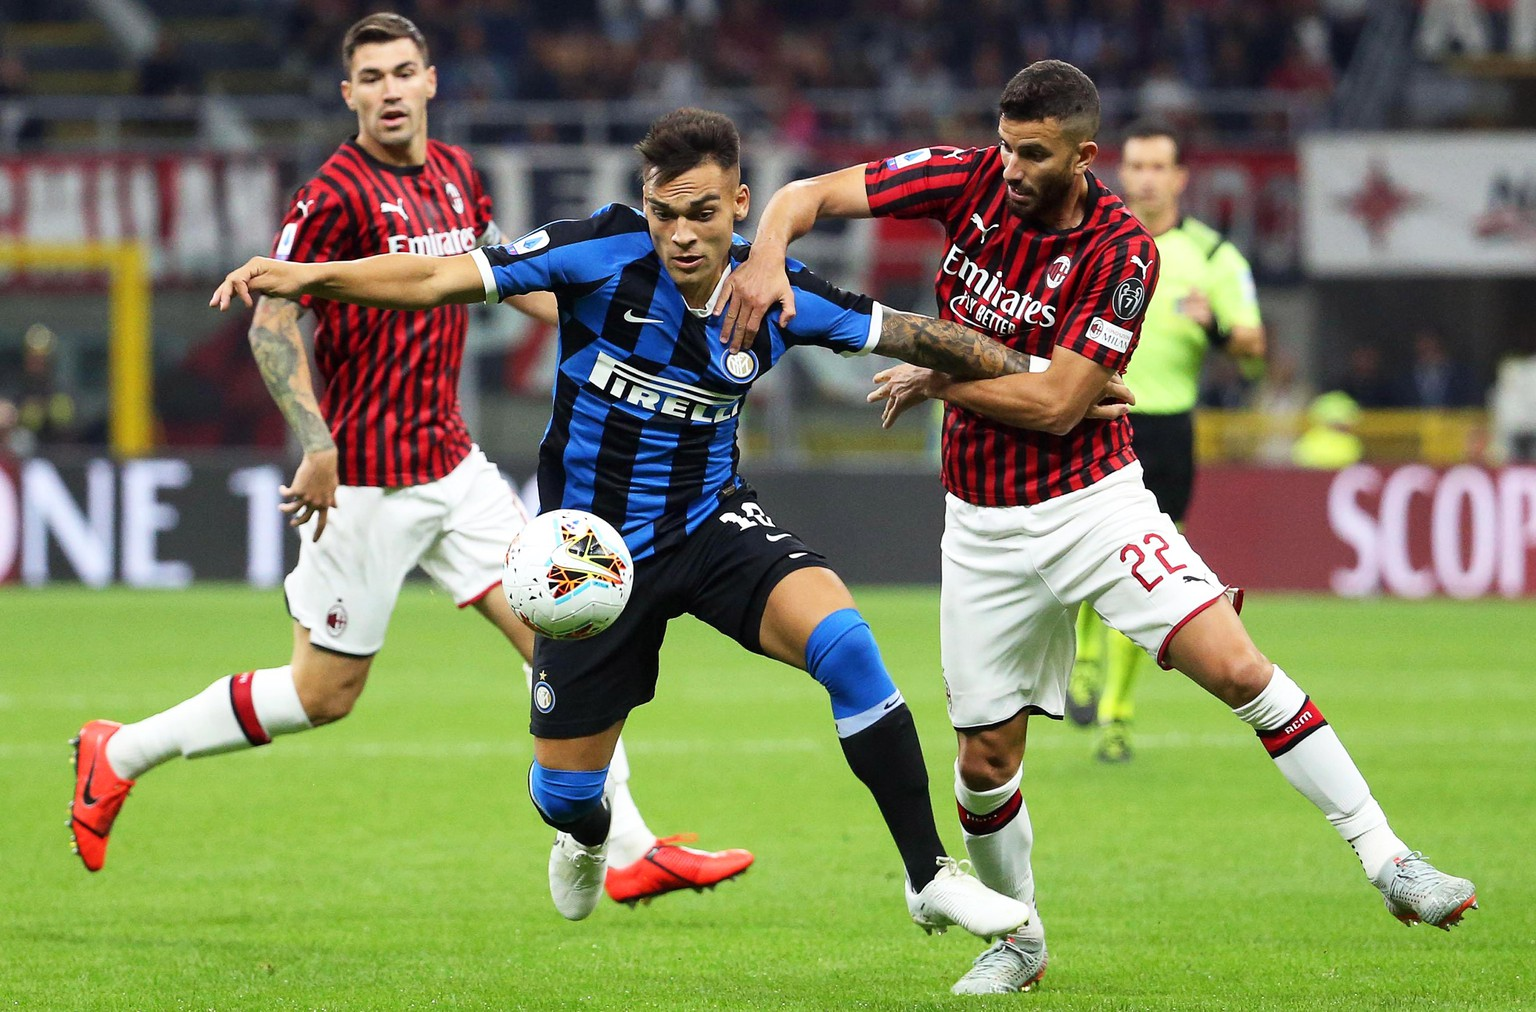 epa07859978 Milan's Mateo Musacchio (R) in action against Inter's Lautaro Martinez (C) during the Italian Serie A soccer match between AC Milan and Inter Milan at Giuseppe Meazza stadium in Milan, Italy, 21 September 2019.  EPA/MATTEO BAZZI